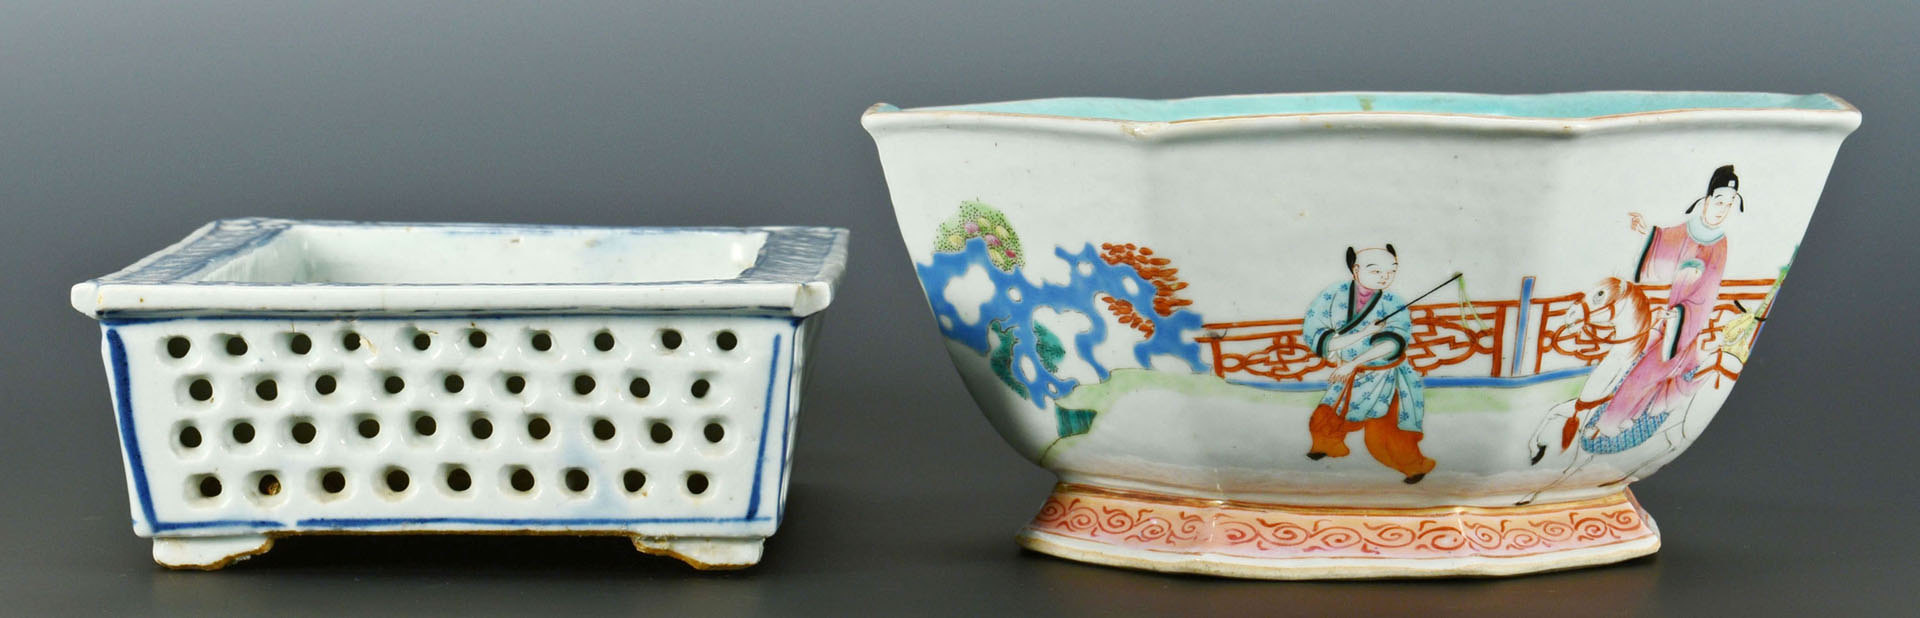 Lot 223: 2 Chinese Export Porcelain Items, Bowl & Planter